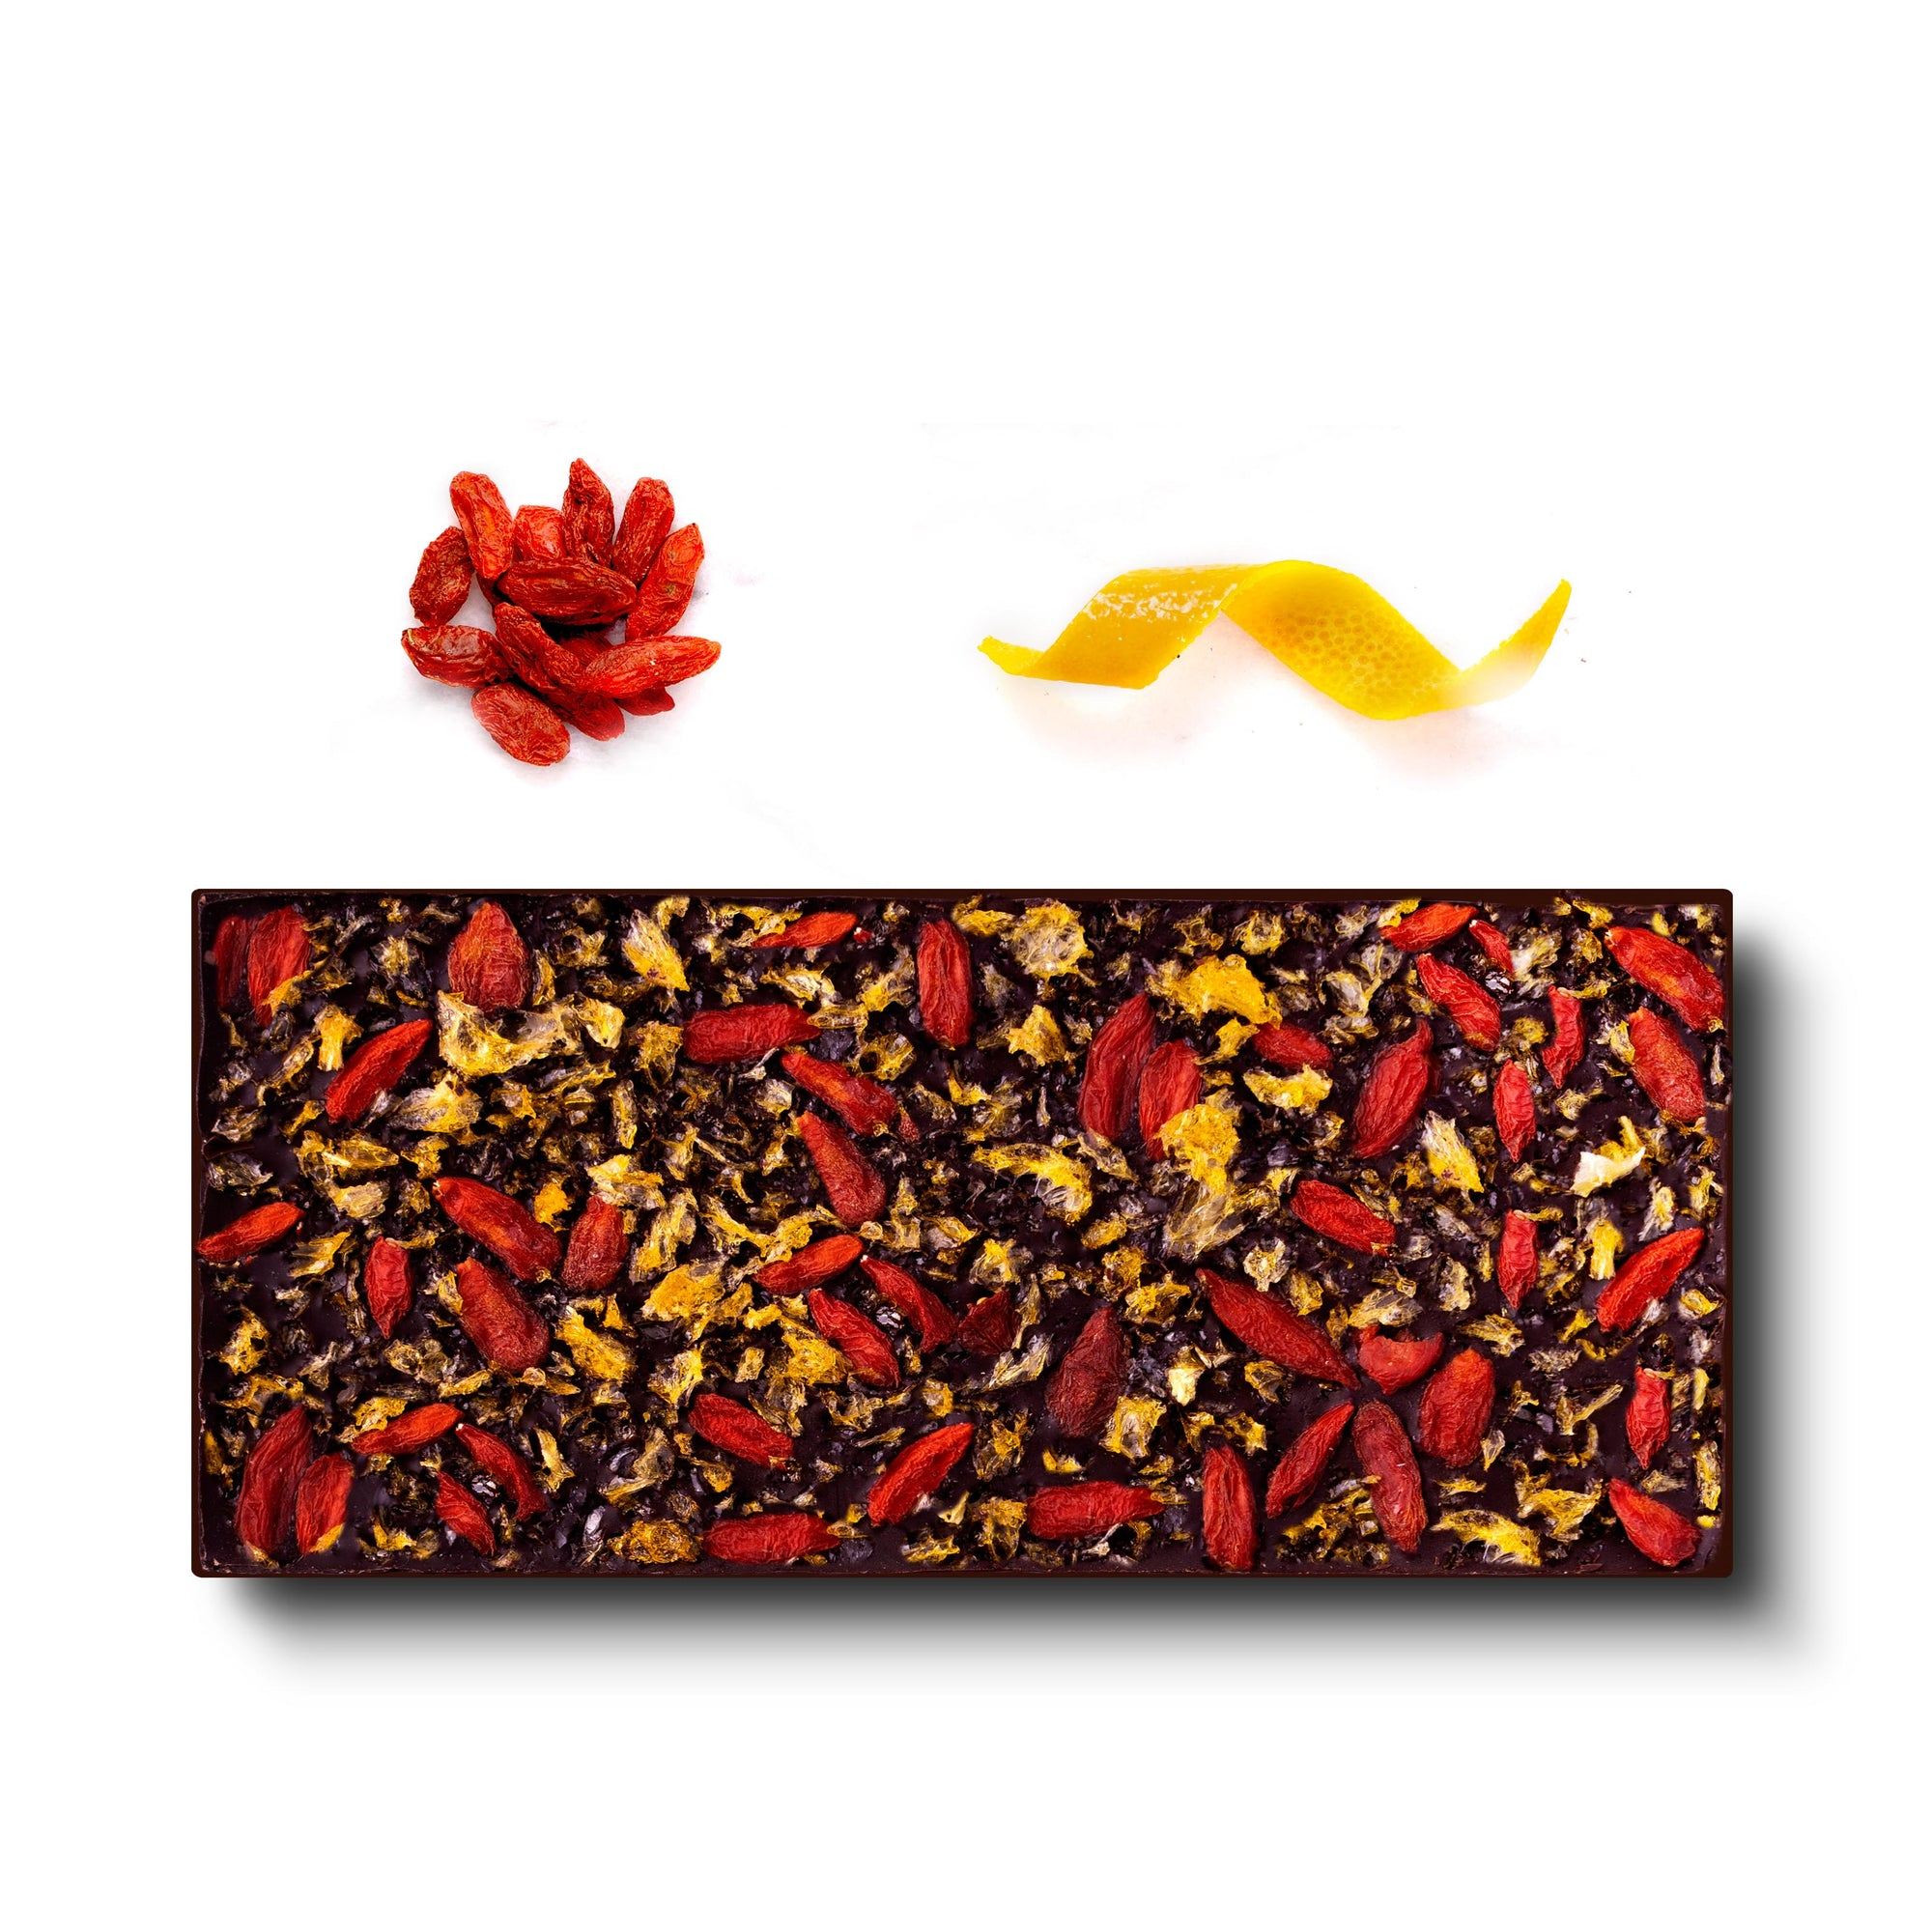 Belgian Dark Chocolate - Beijing (Goji Berries and Mandarin Orange)